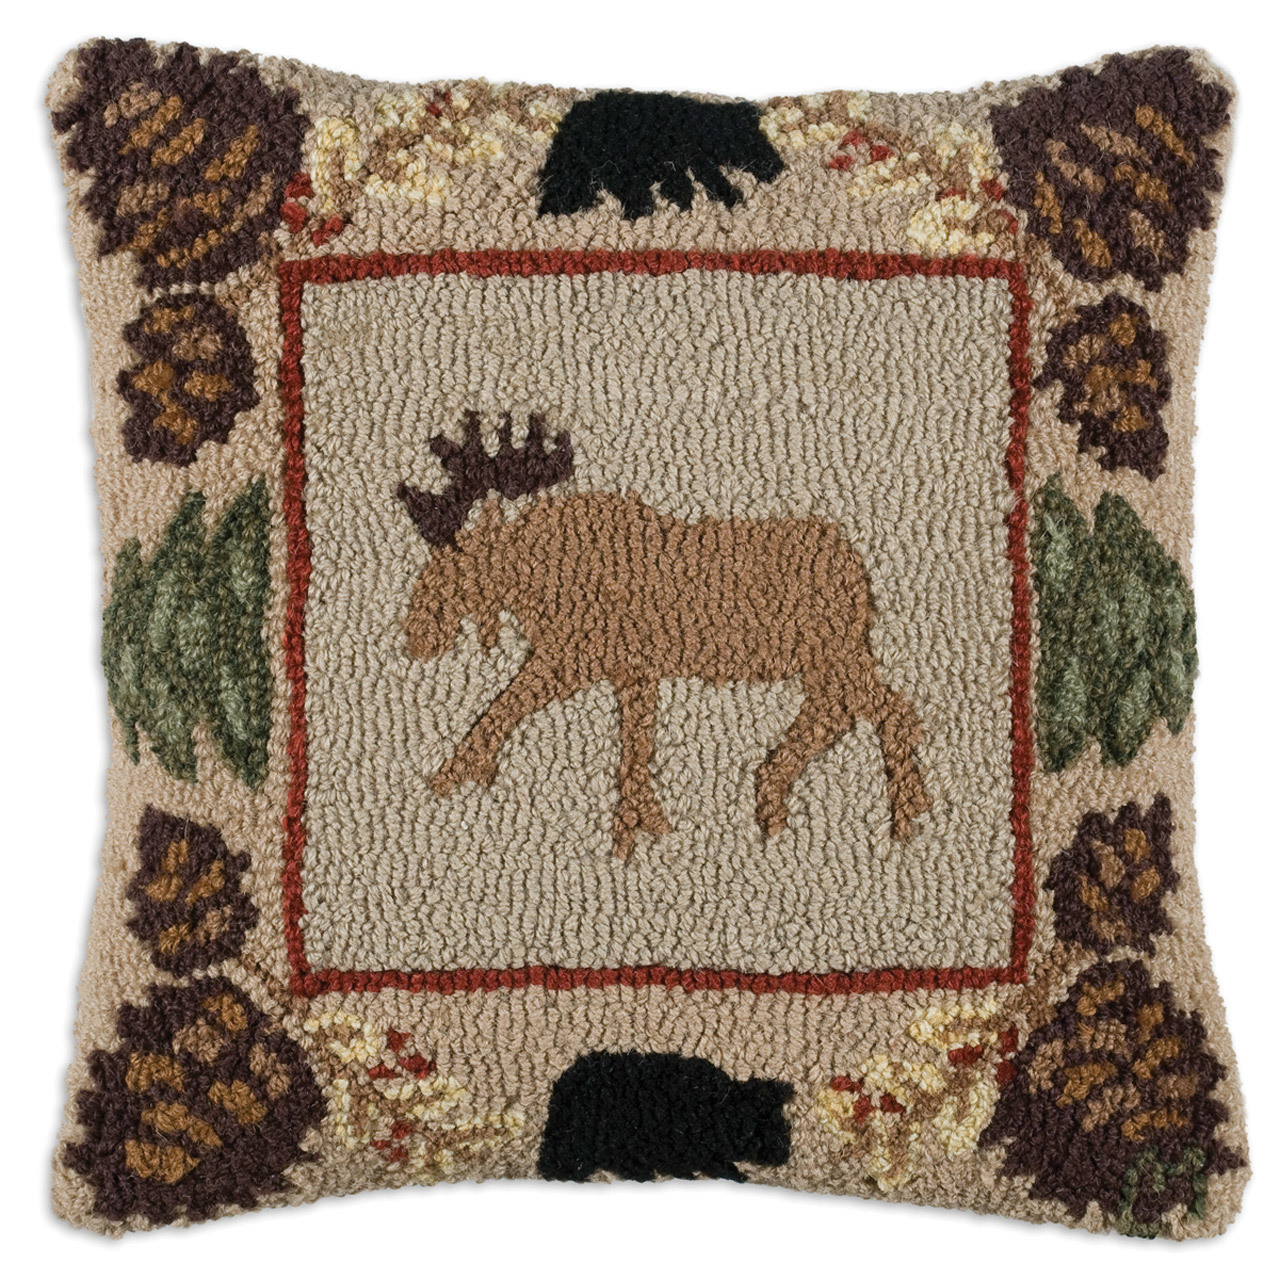 northwoods moose with pinecones and a bear